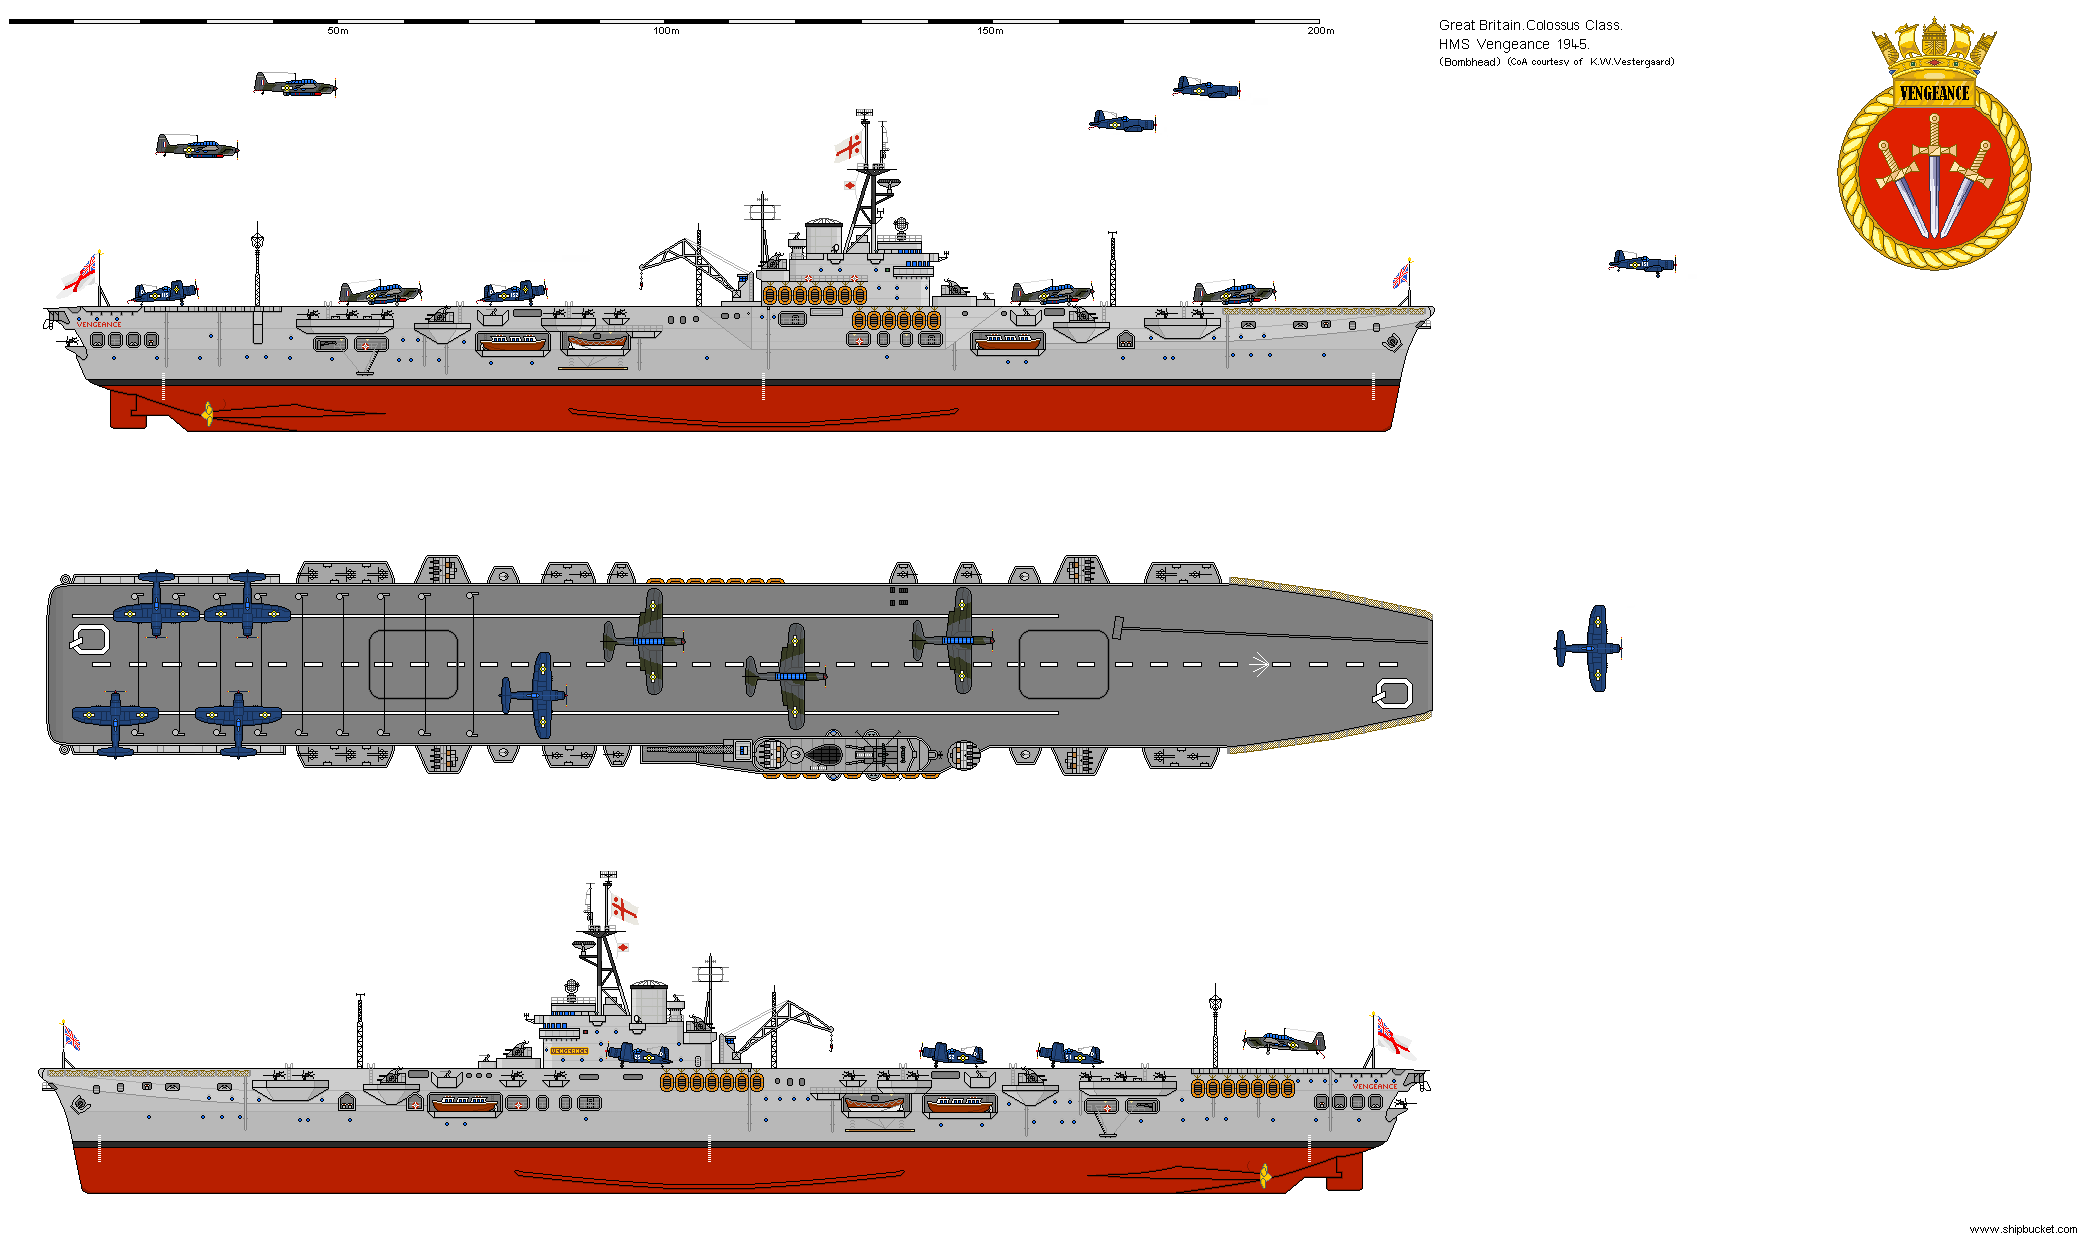 Shipbucket real designs great britain cv r71 vengeance 1945 png